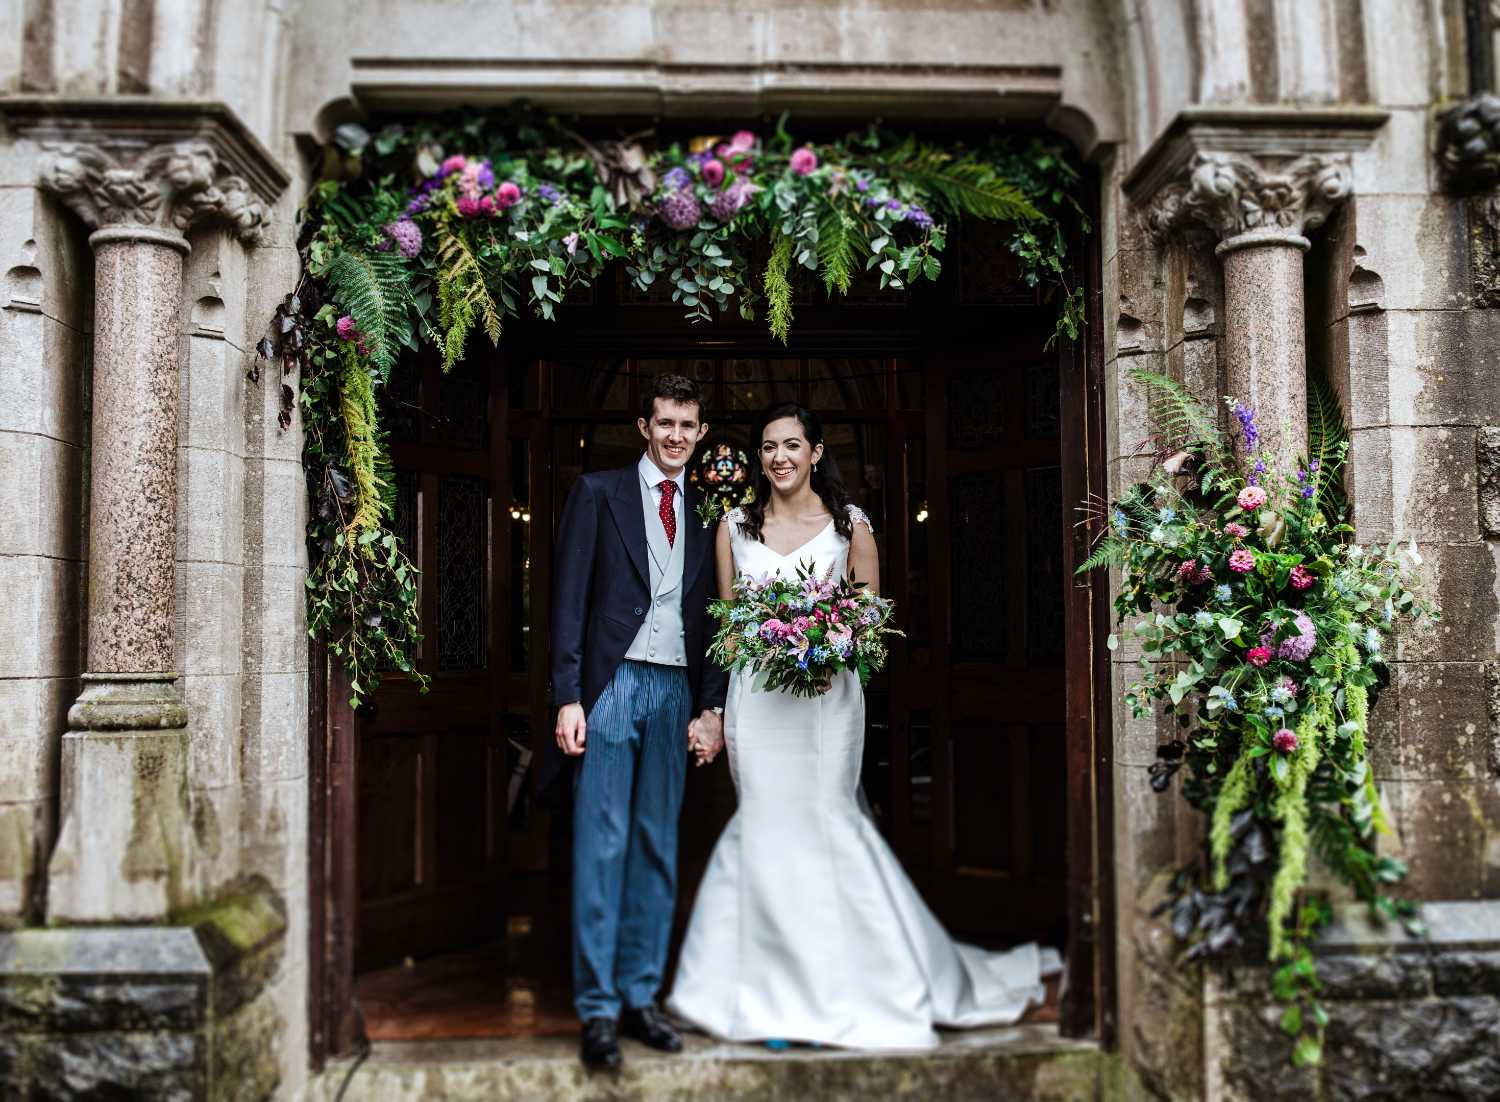 Foral Archway